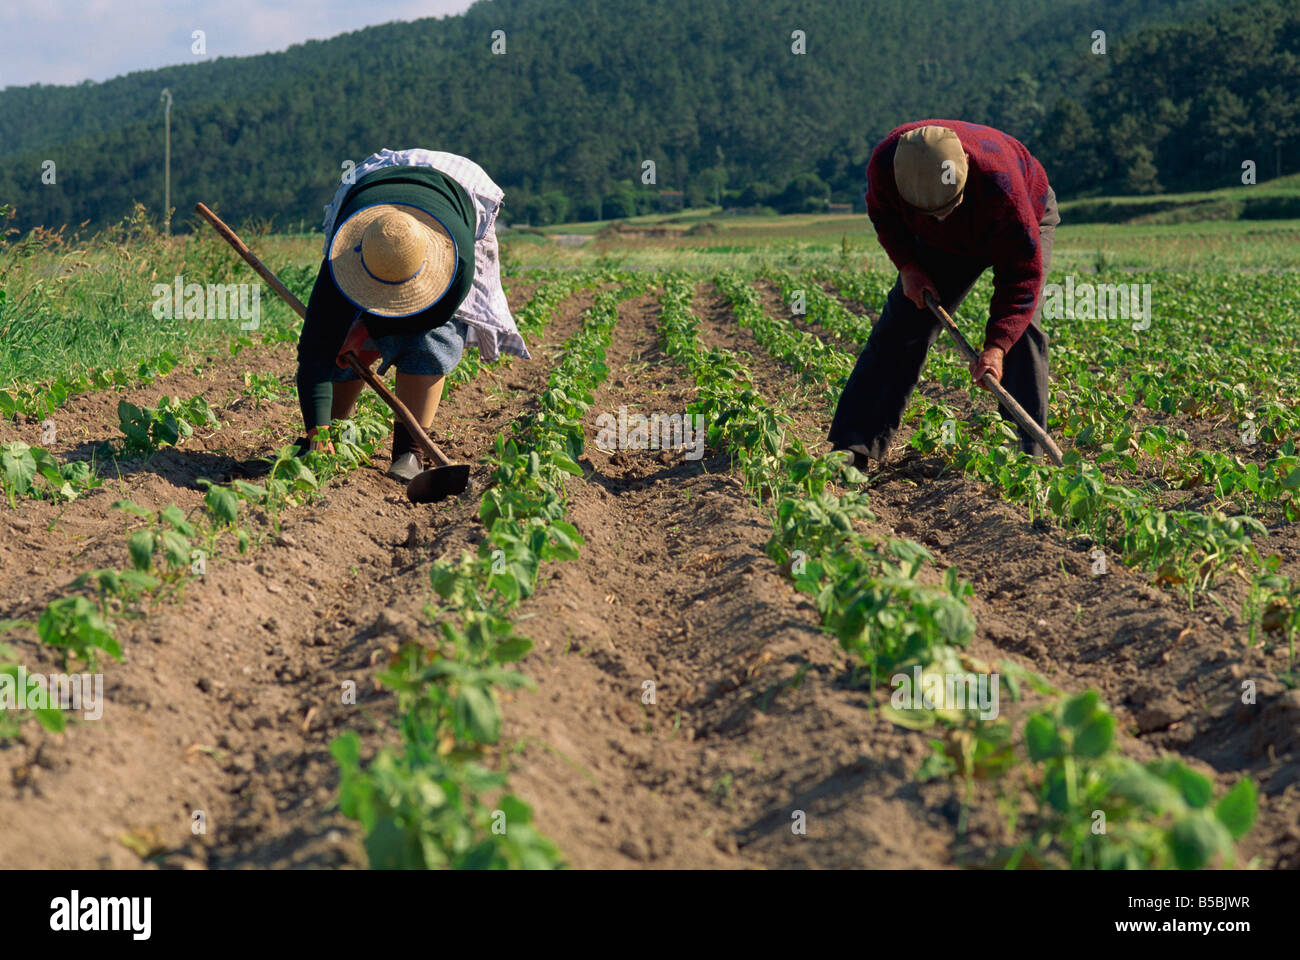 Subsistence farmers hand-hoeing cultivated bean plants, Laxe District, Galicia, Spain, Europe - Stock Image